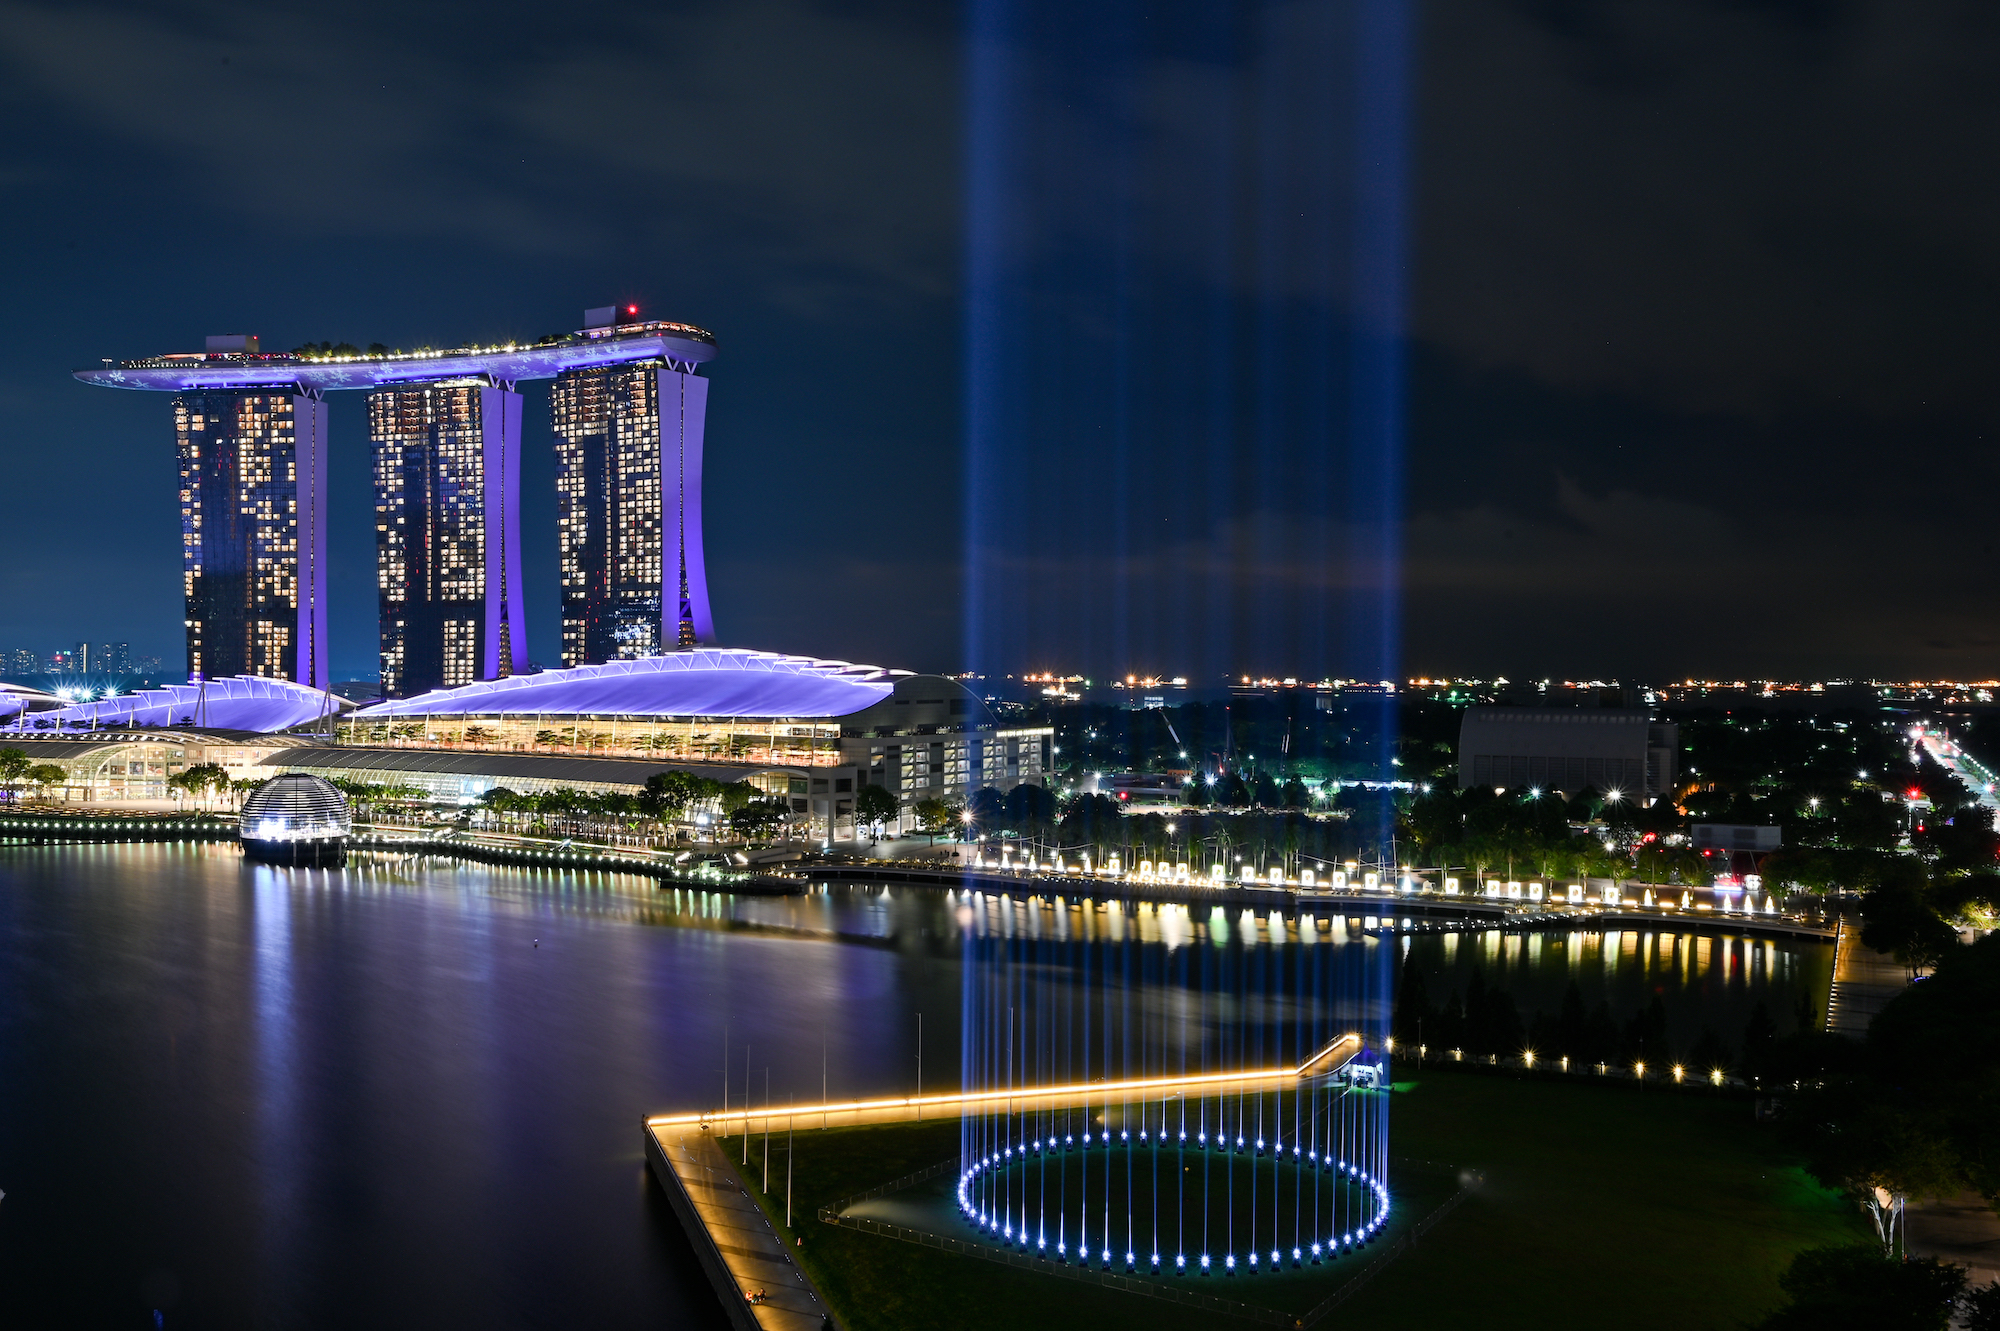 An epic light show will illuminate the Marina Bay this New Year's Eve